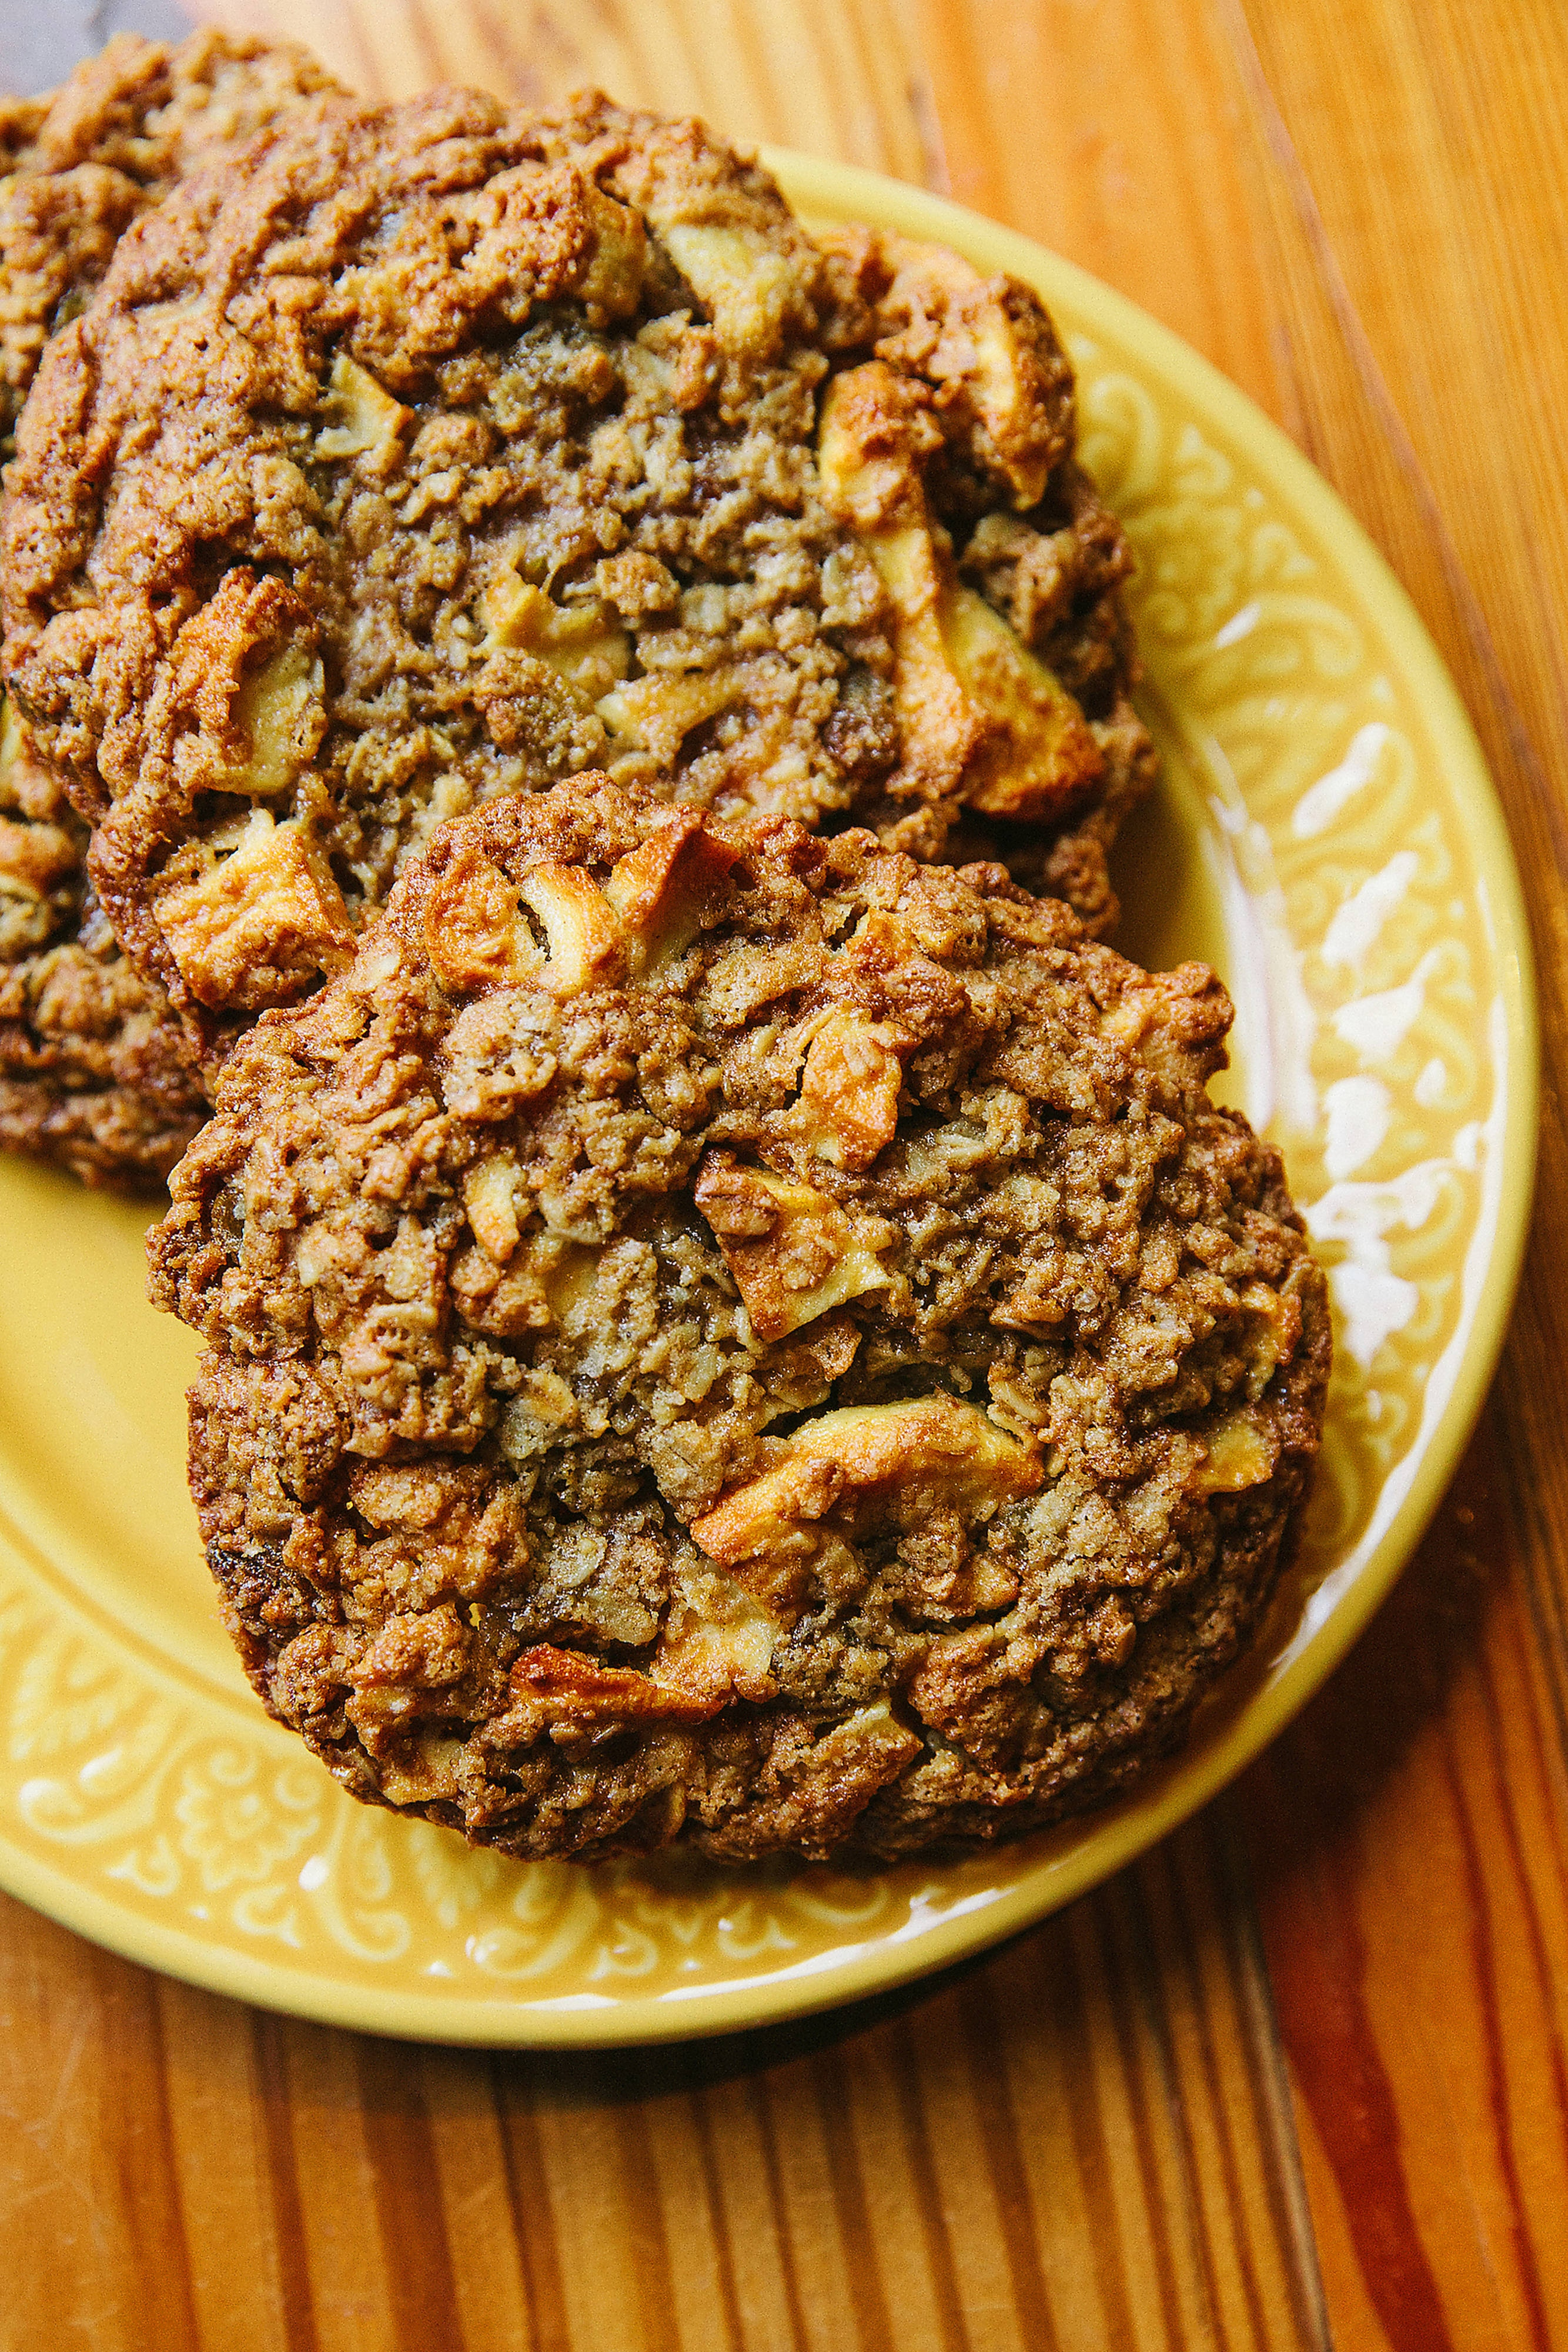 Apple & Oat Cookie at Beatrix